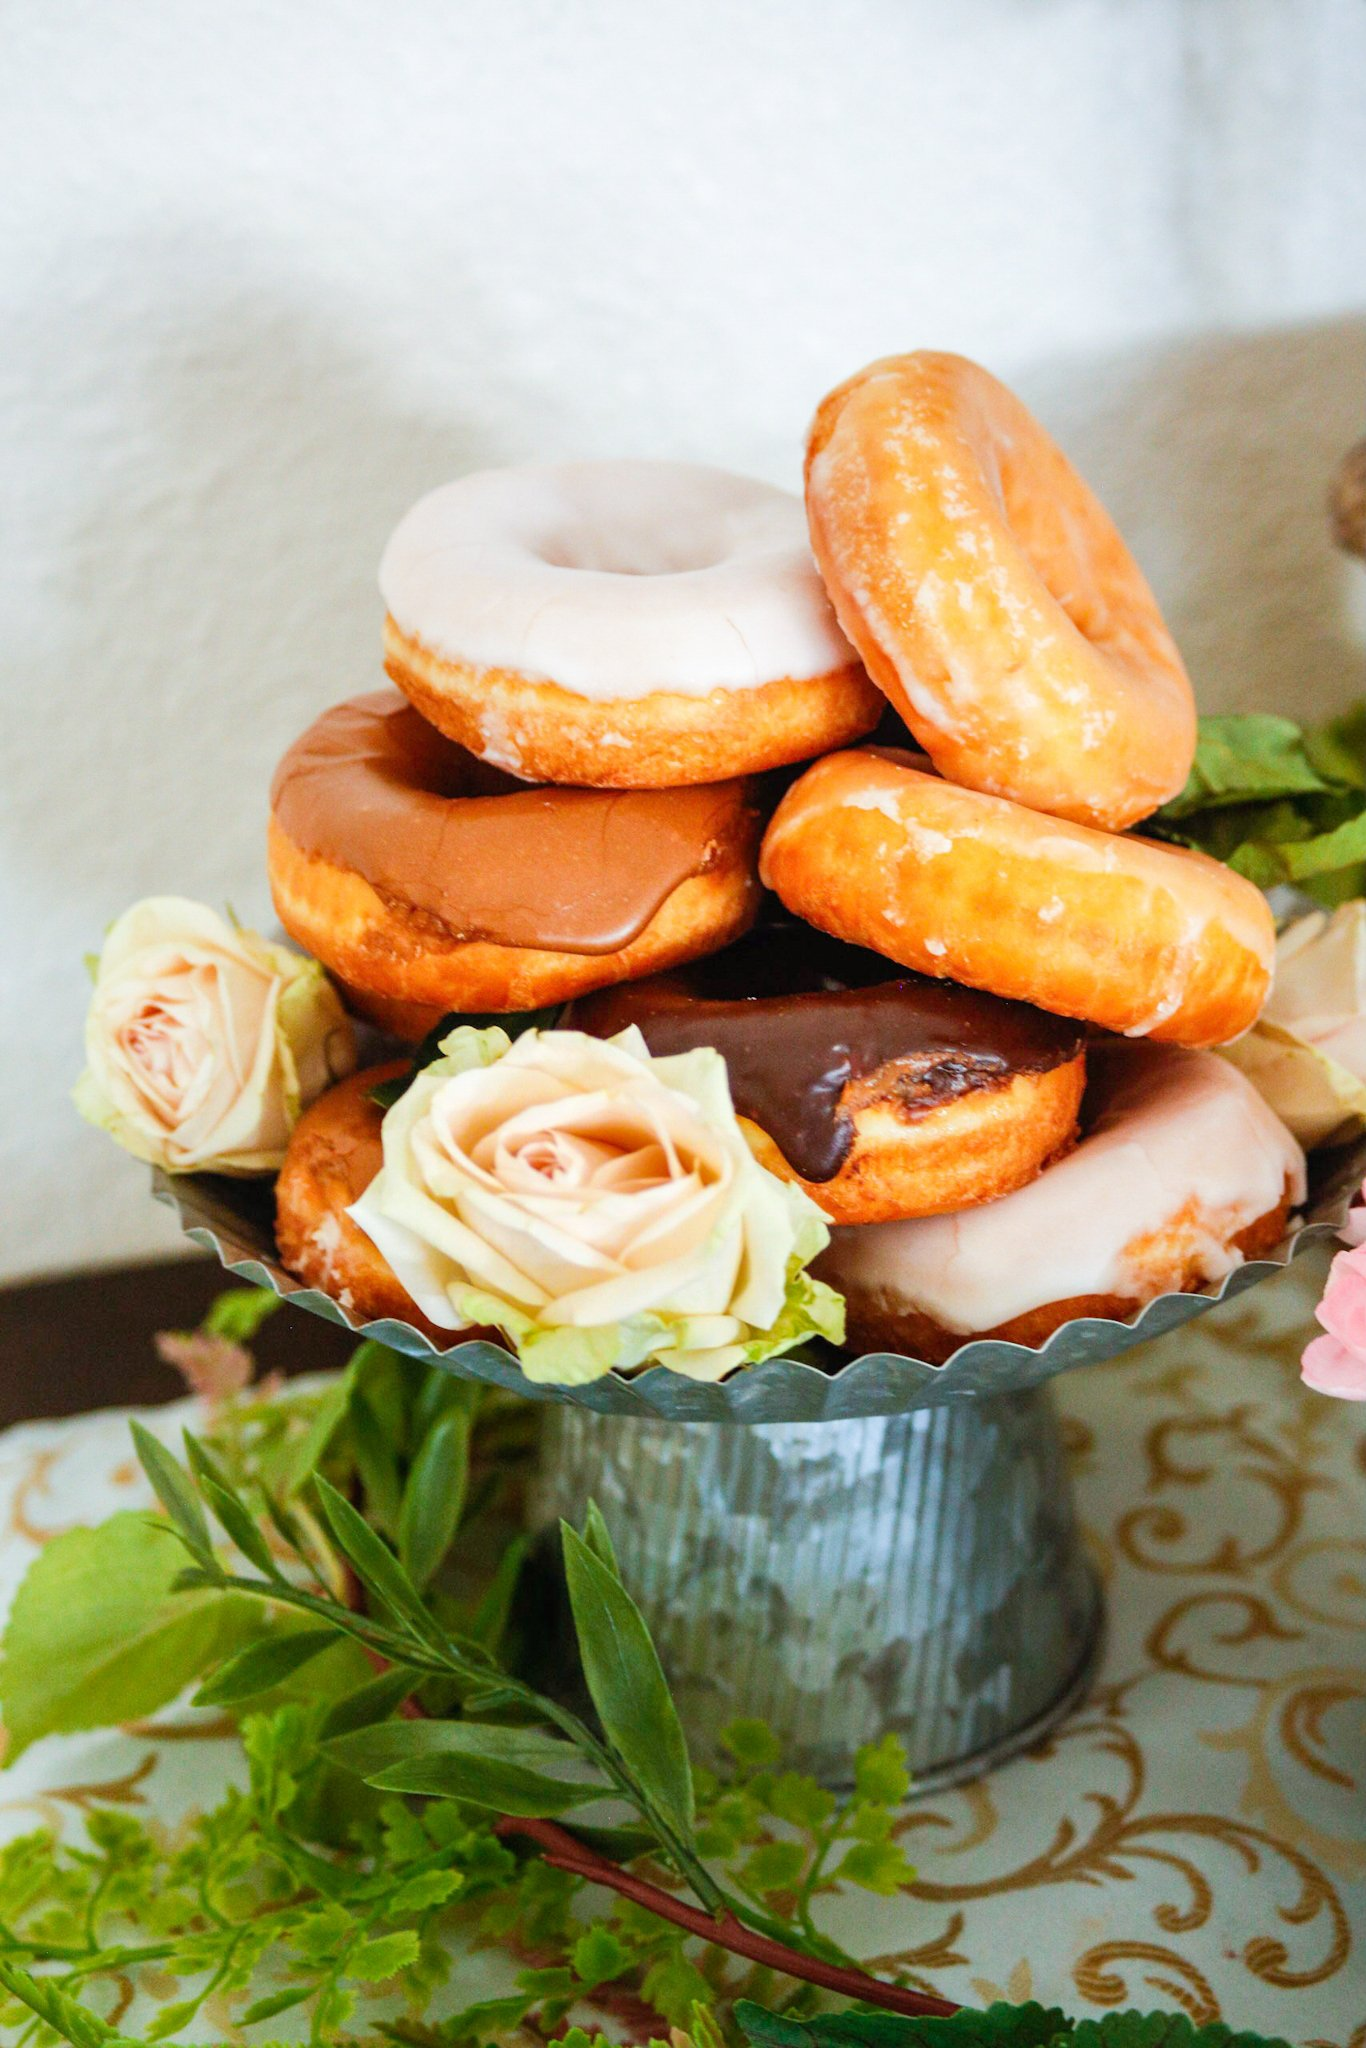 Donuts served on a cake stand with pale pink roses